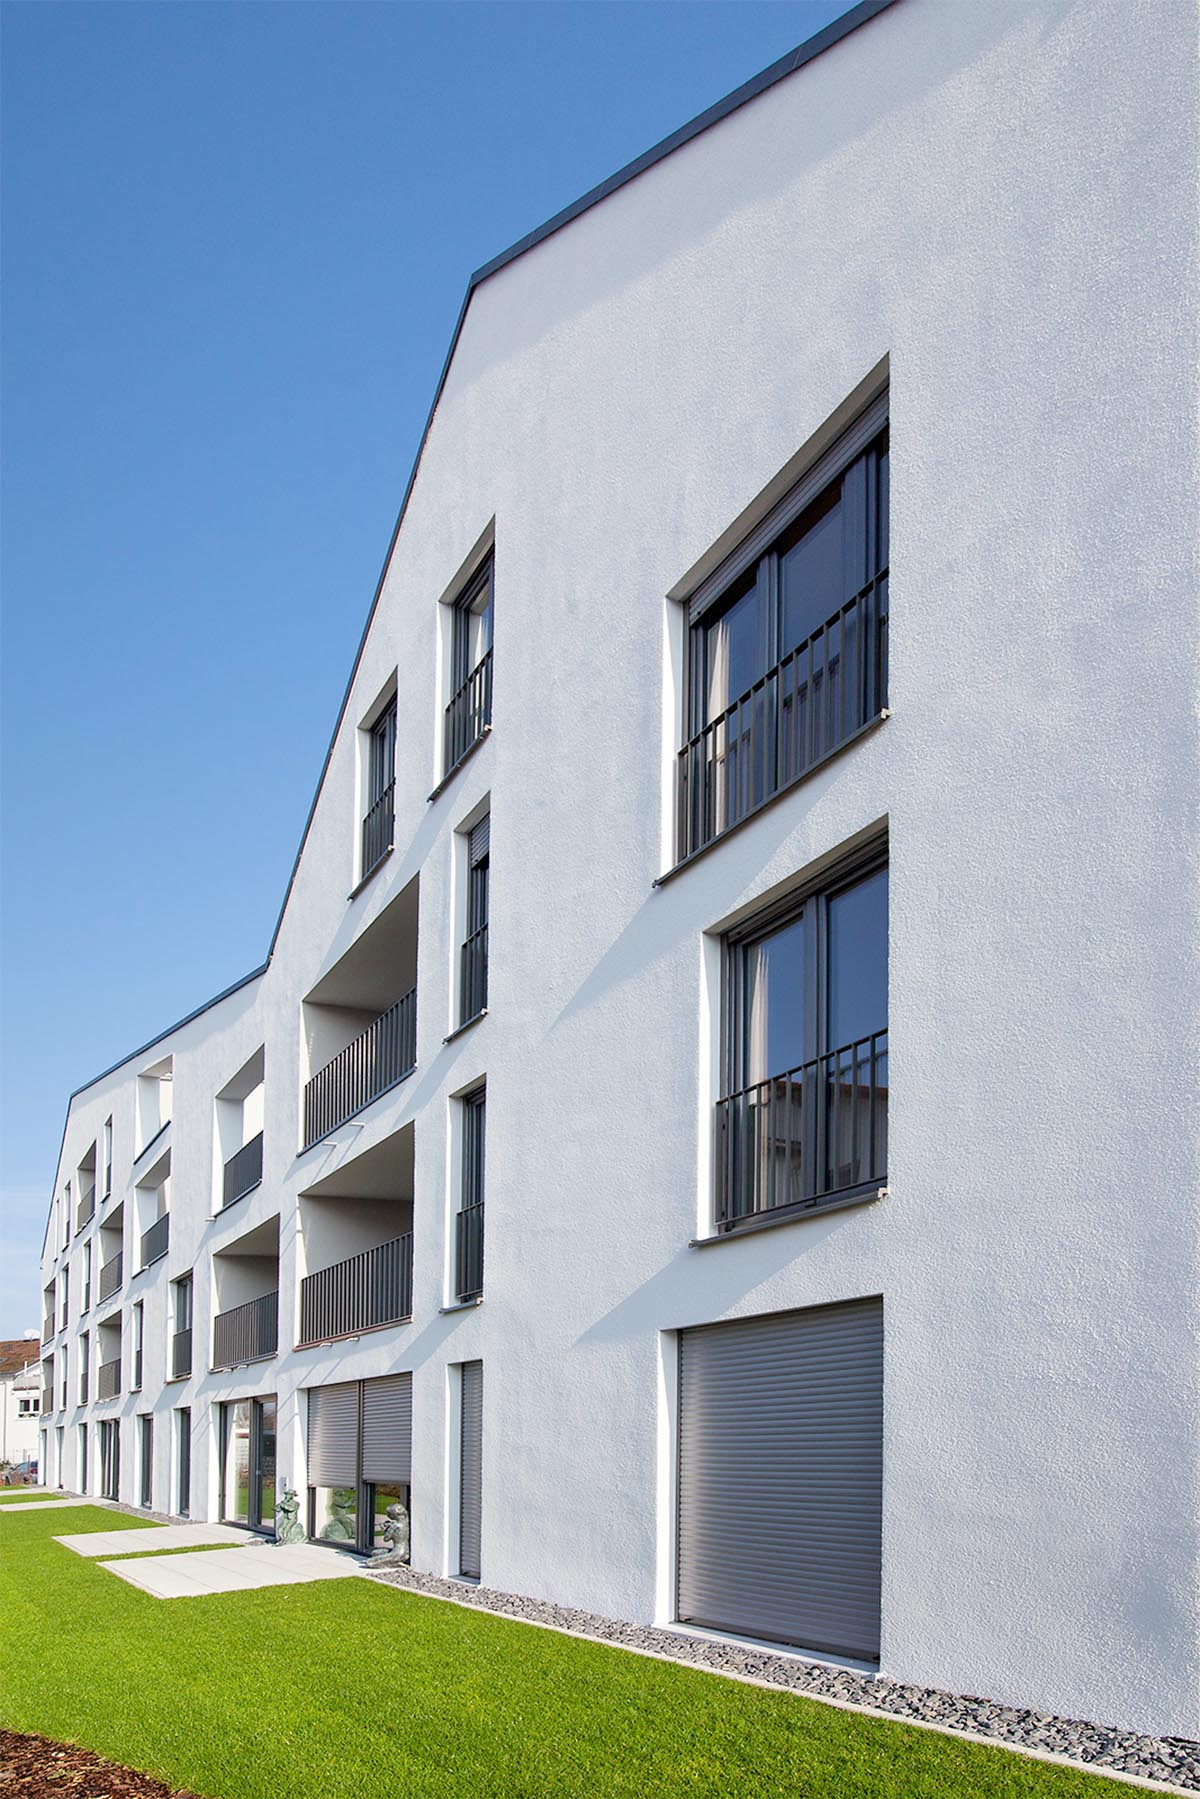 283_MG_1628-Westfassade2